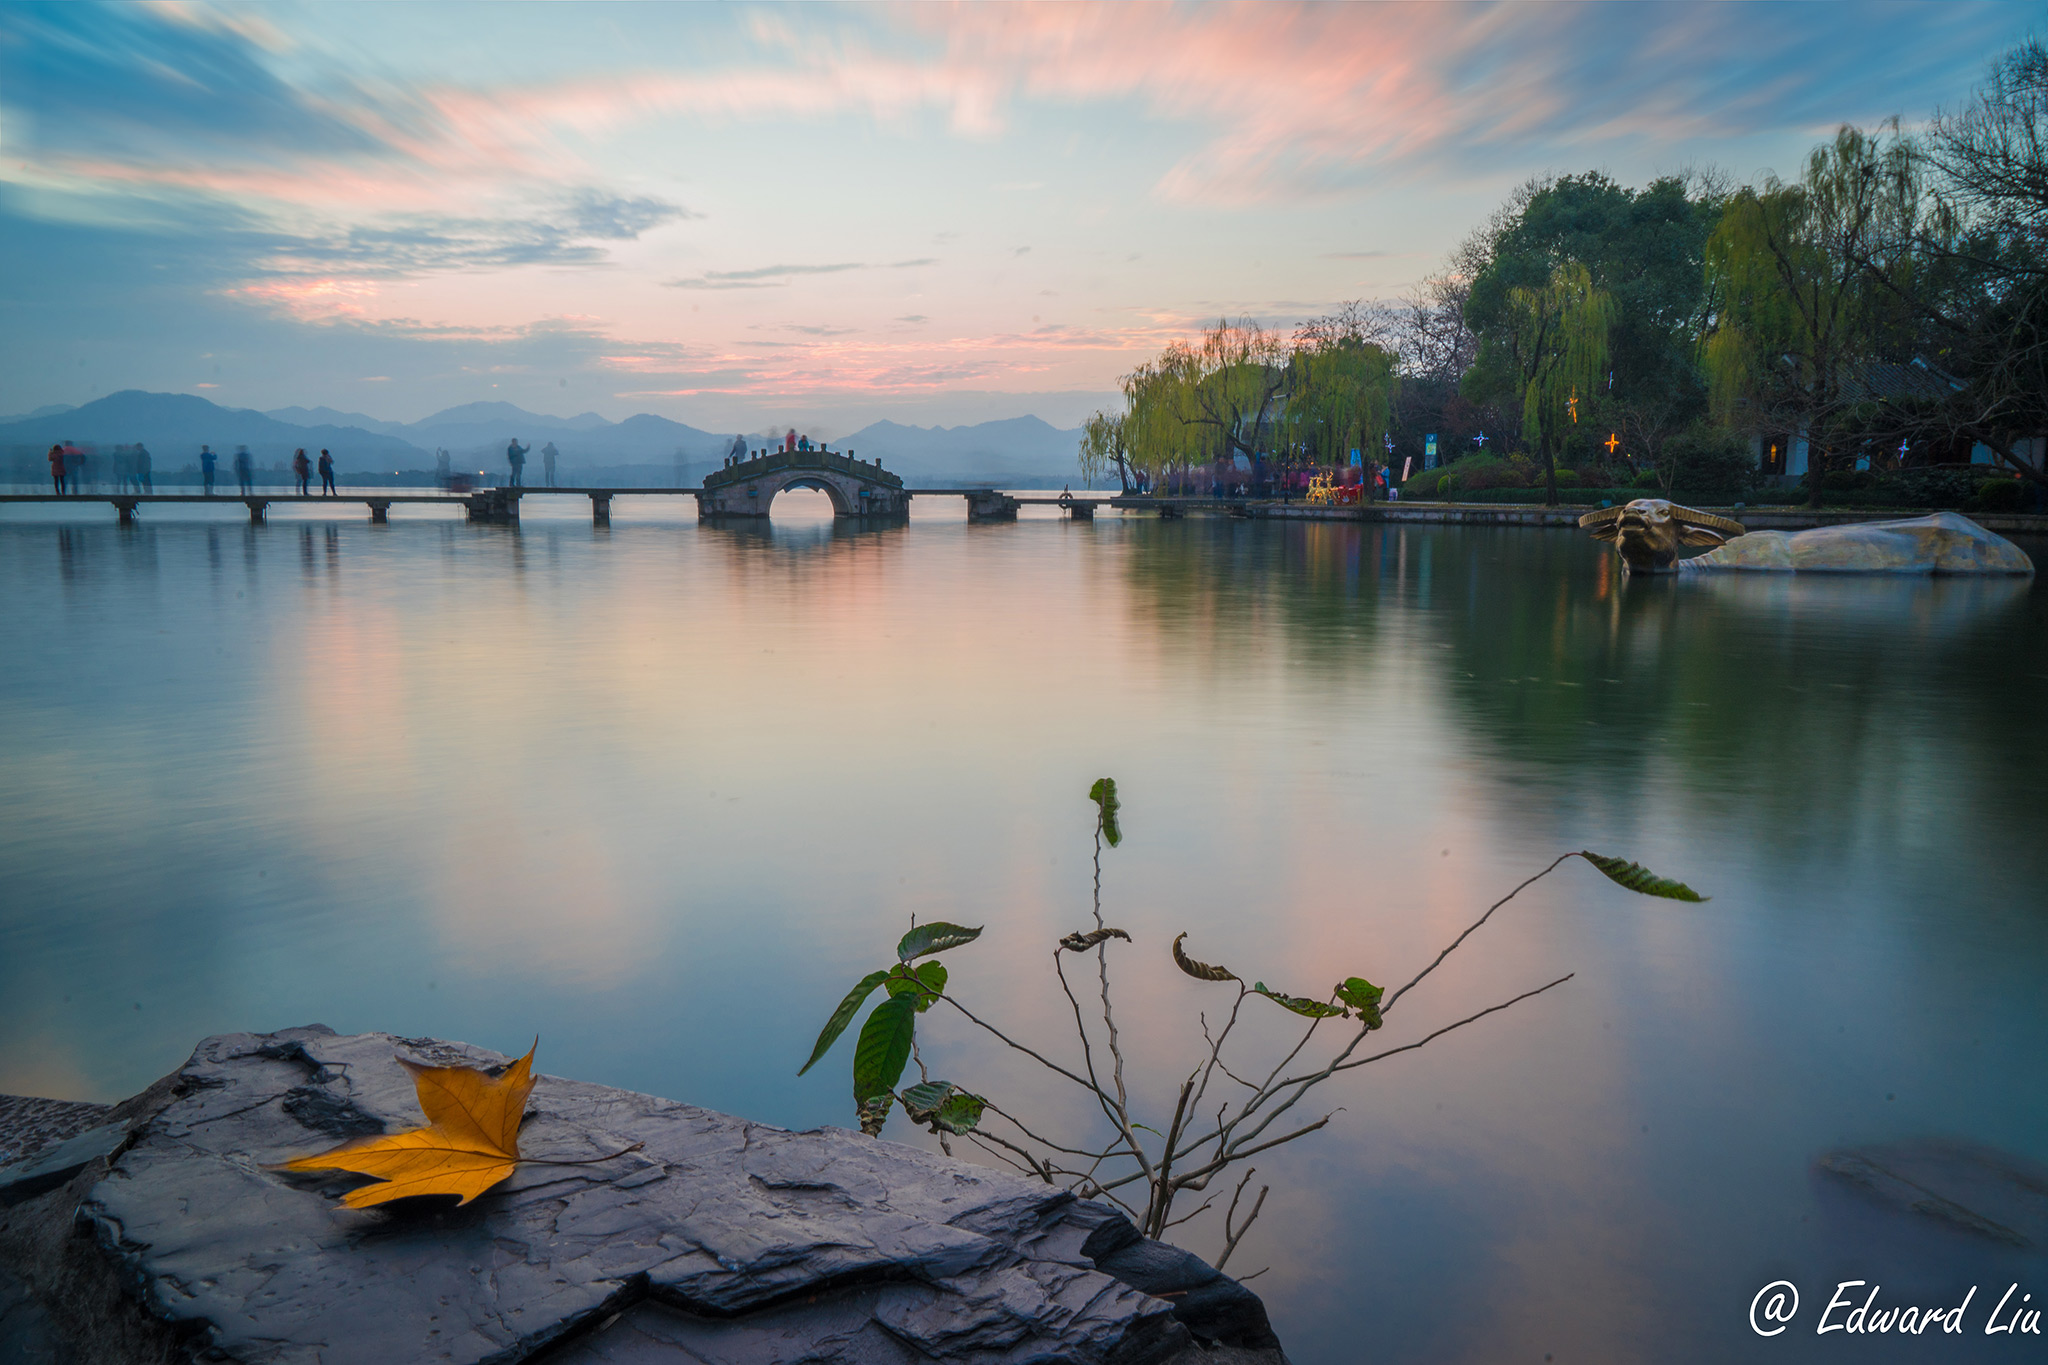 Sunset at West Lake, Hangzhou, China.